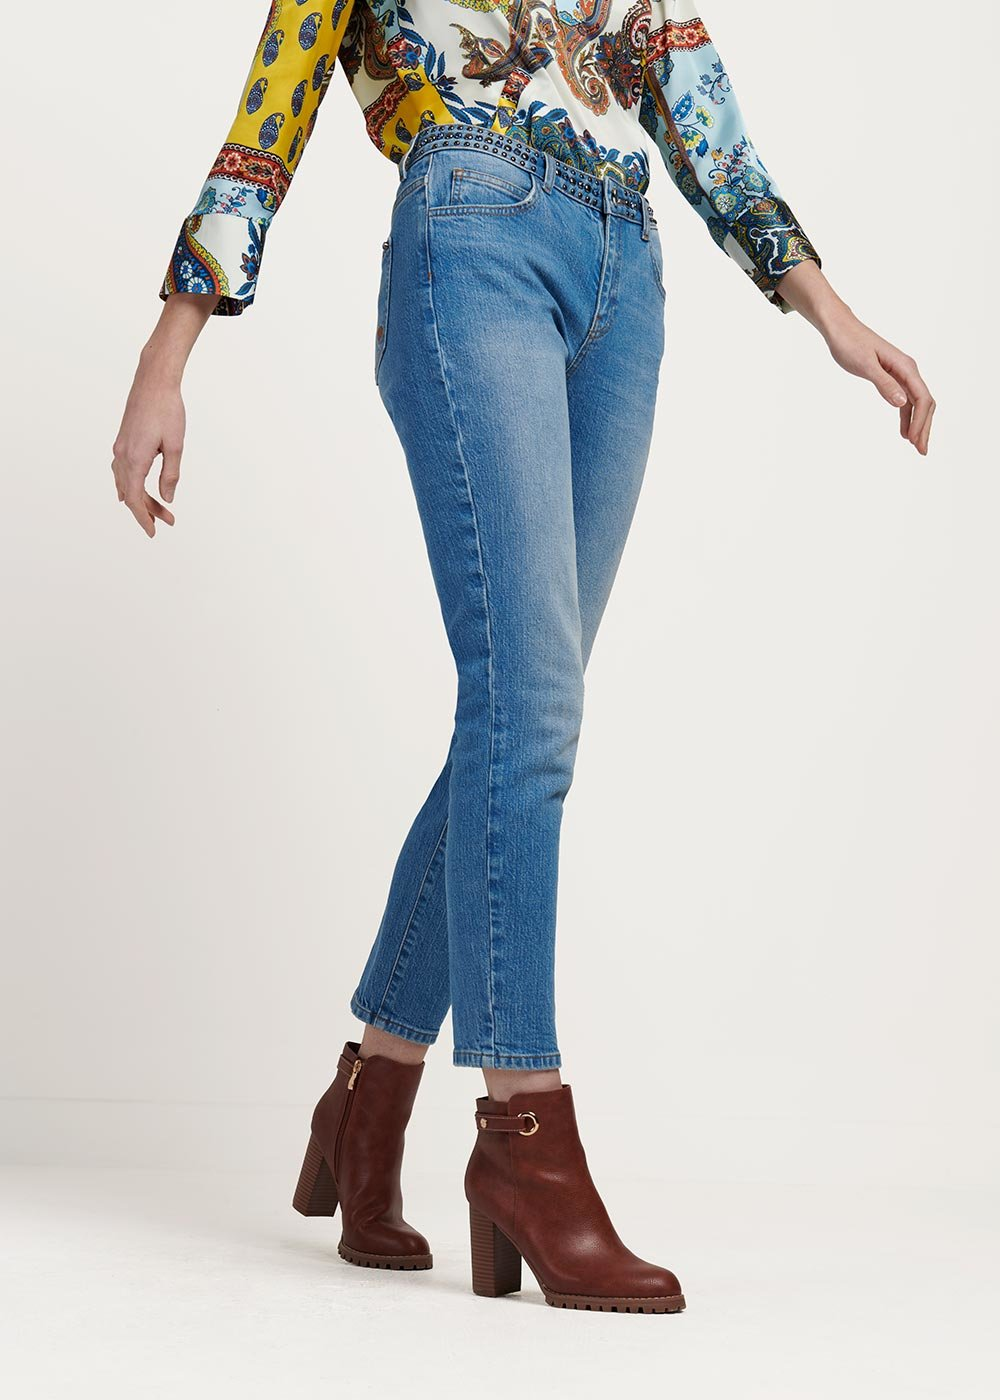 Daisy denim with detail of stones on the bodice